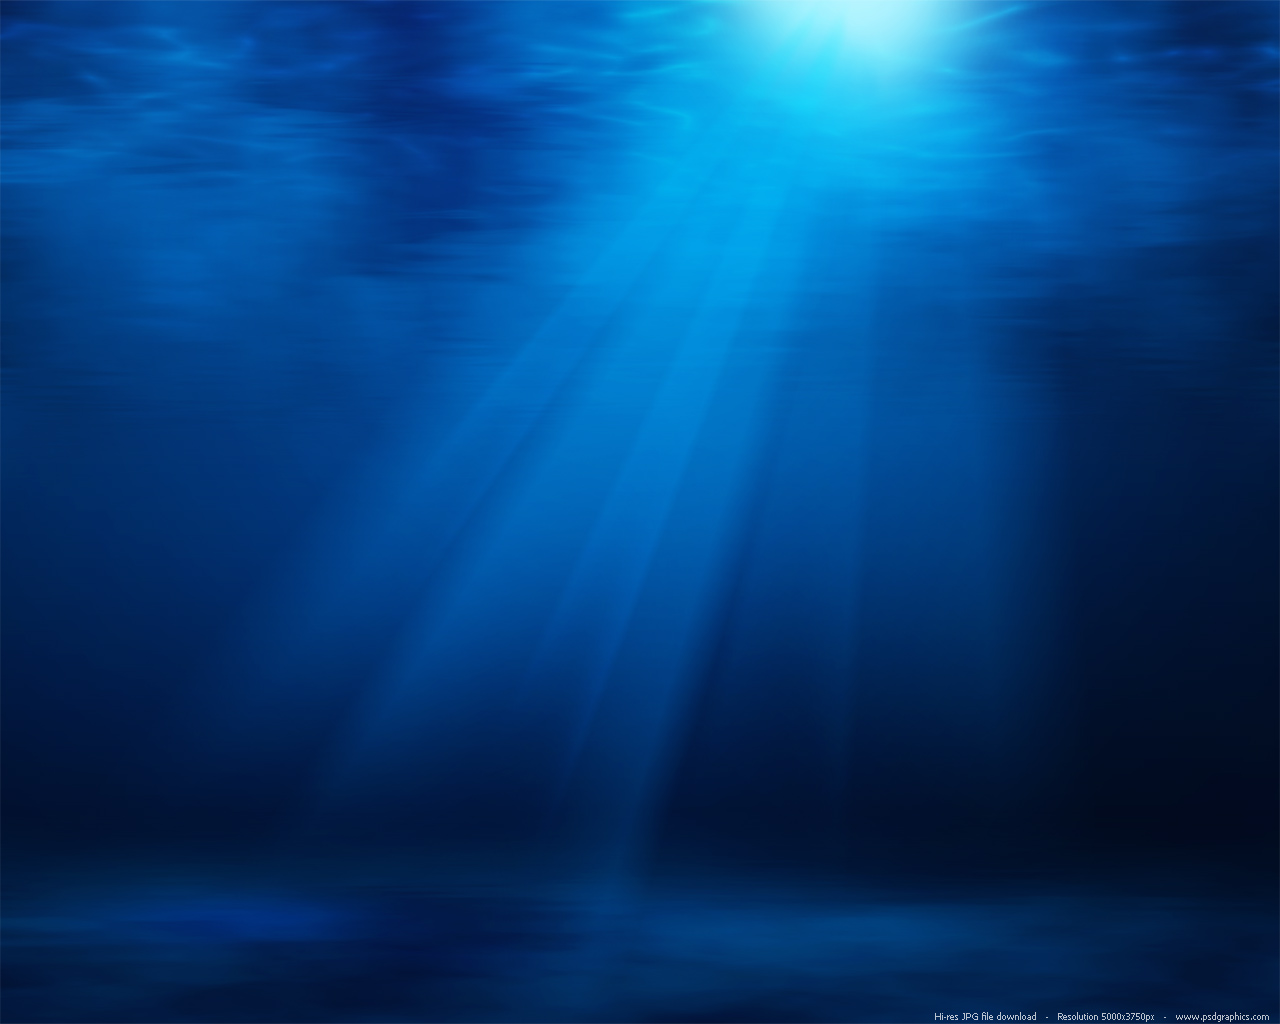 Blue underwater with sun rays background | PSDGraphics